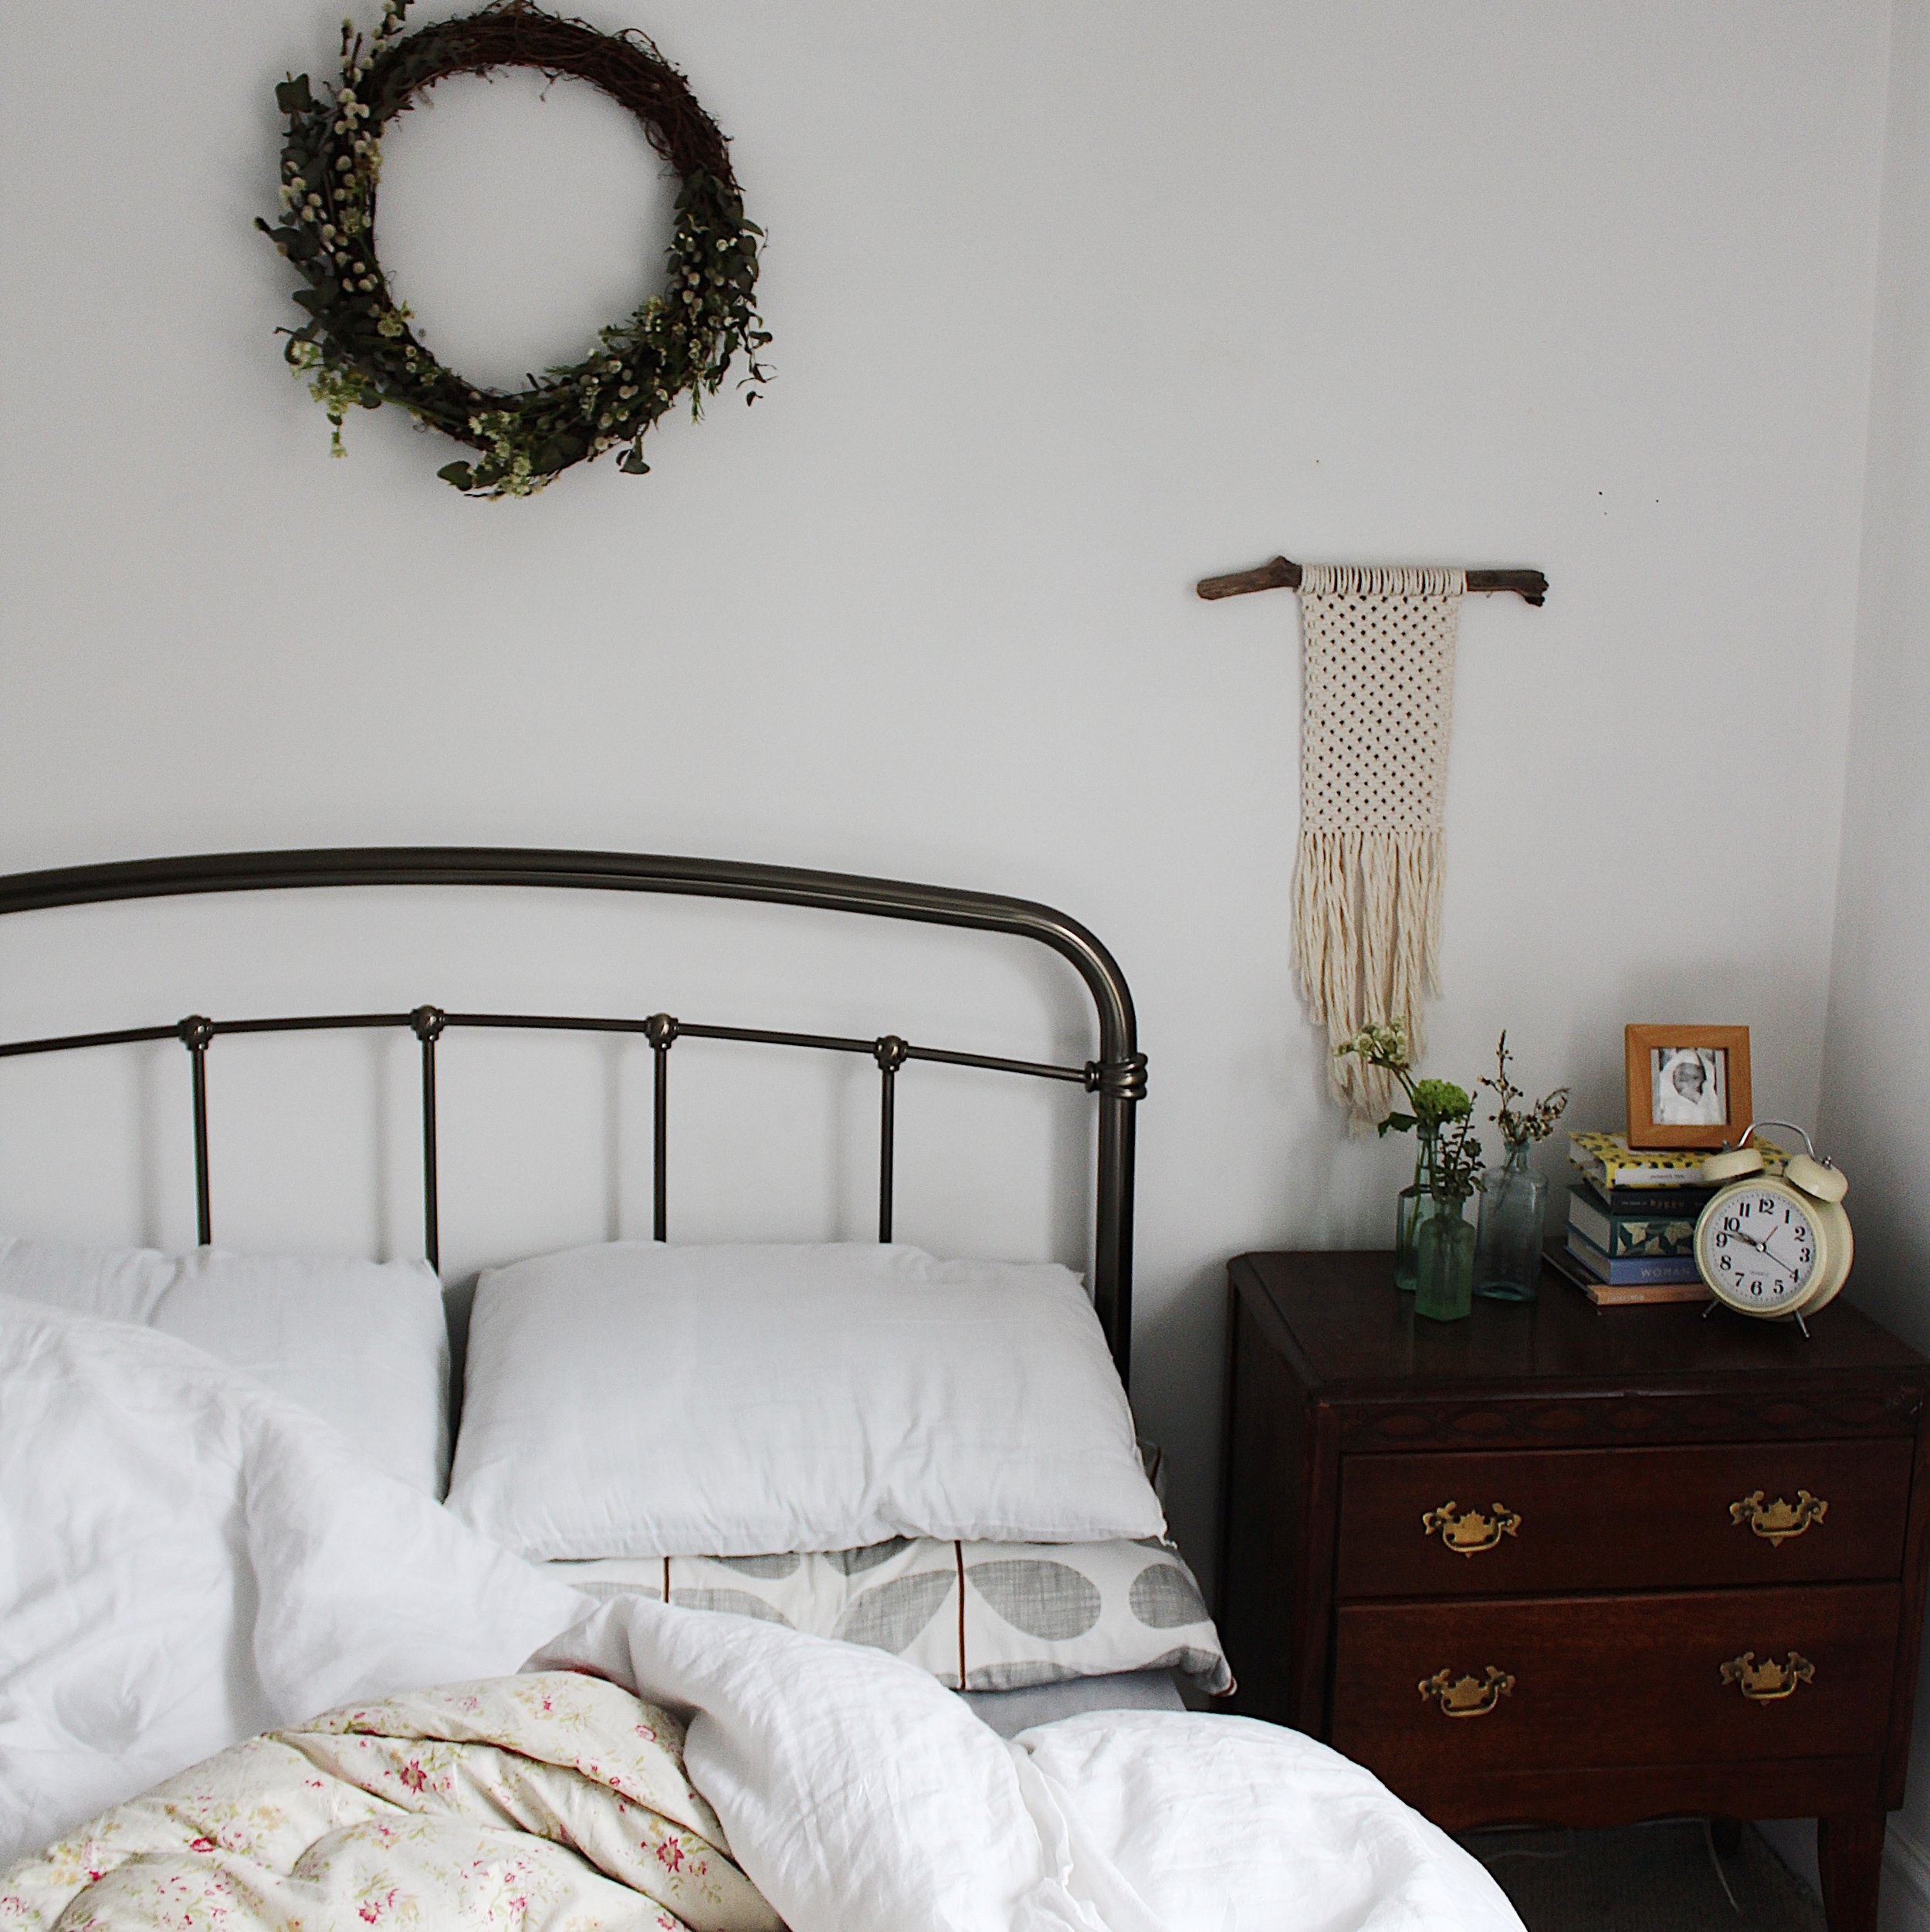 The bedroom has been a real sanctuary from the mess downstairs. It's really important to get proper rest in a calm space.